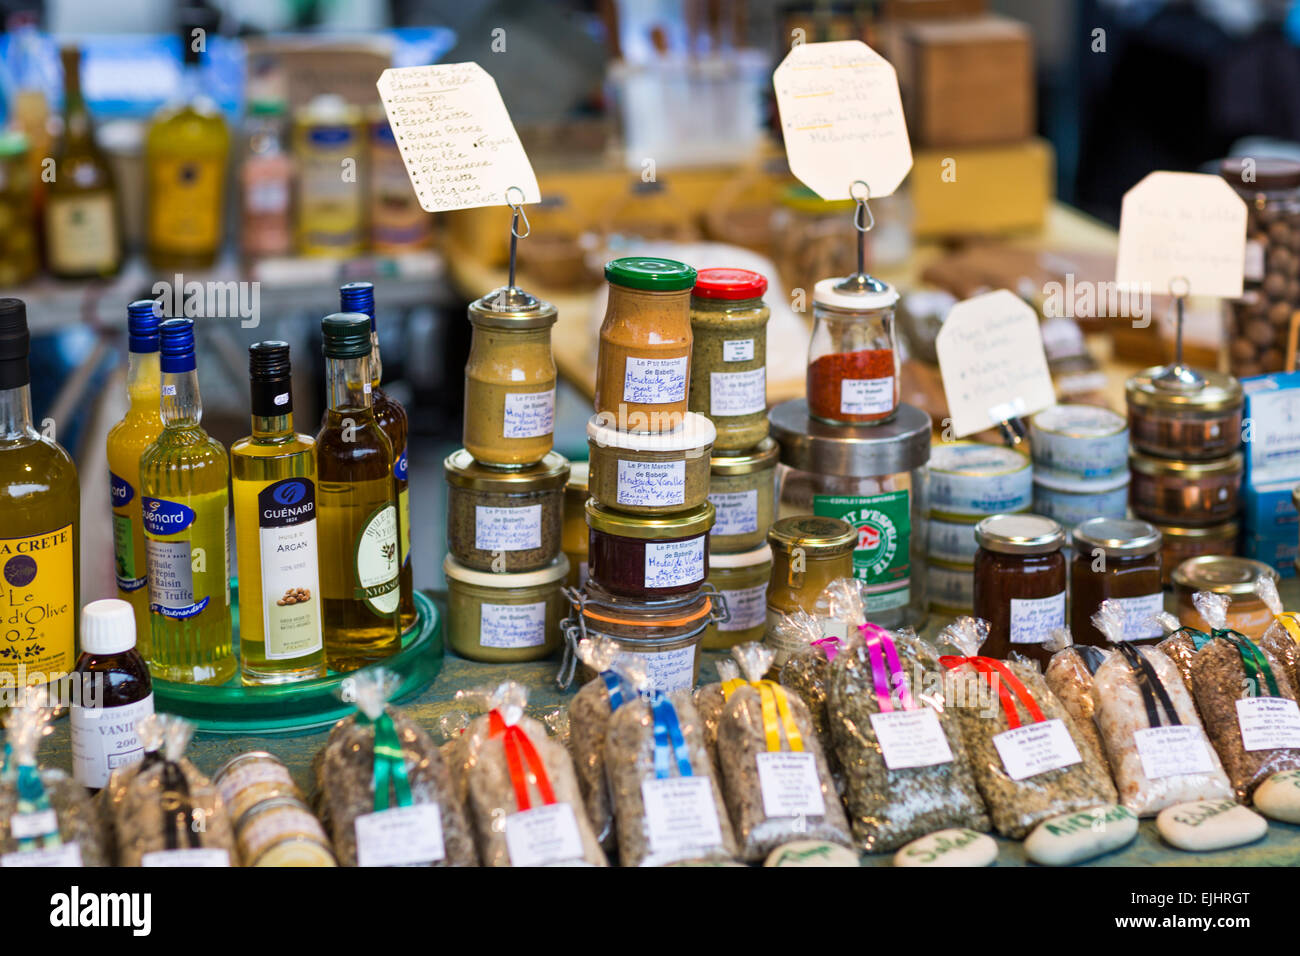 Oil, vinegar, bread and other food items on display, Paris, France - Stock Image